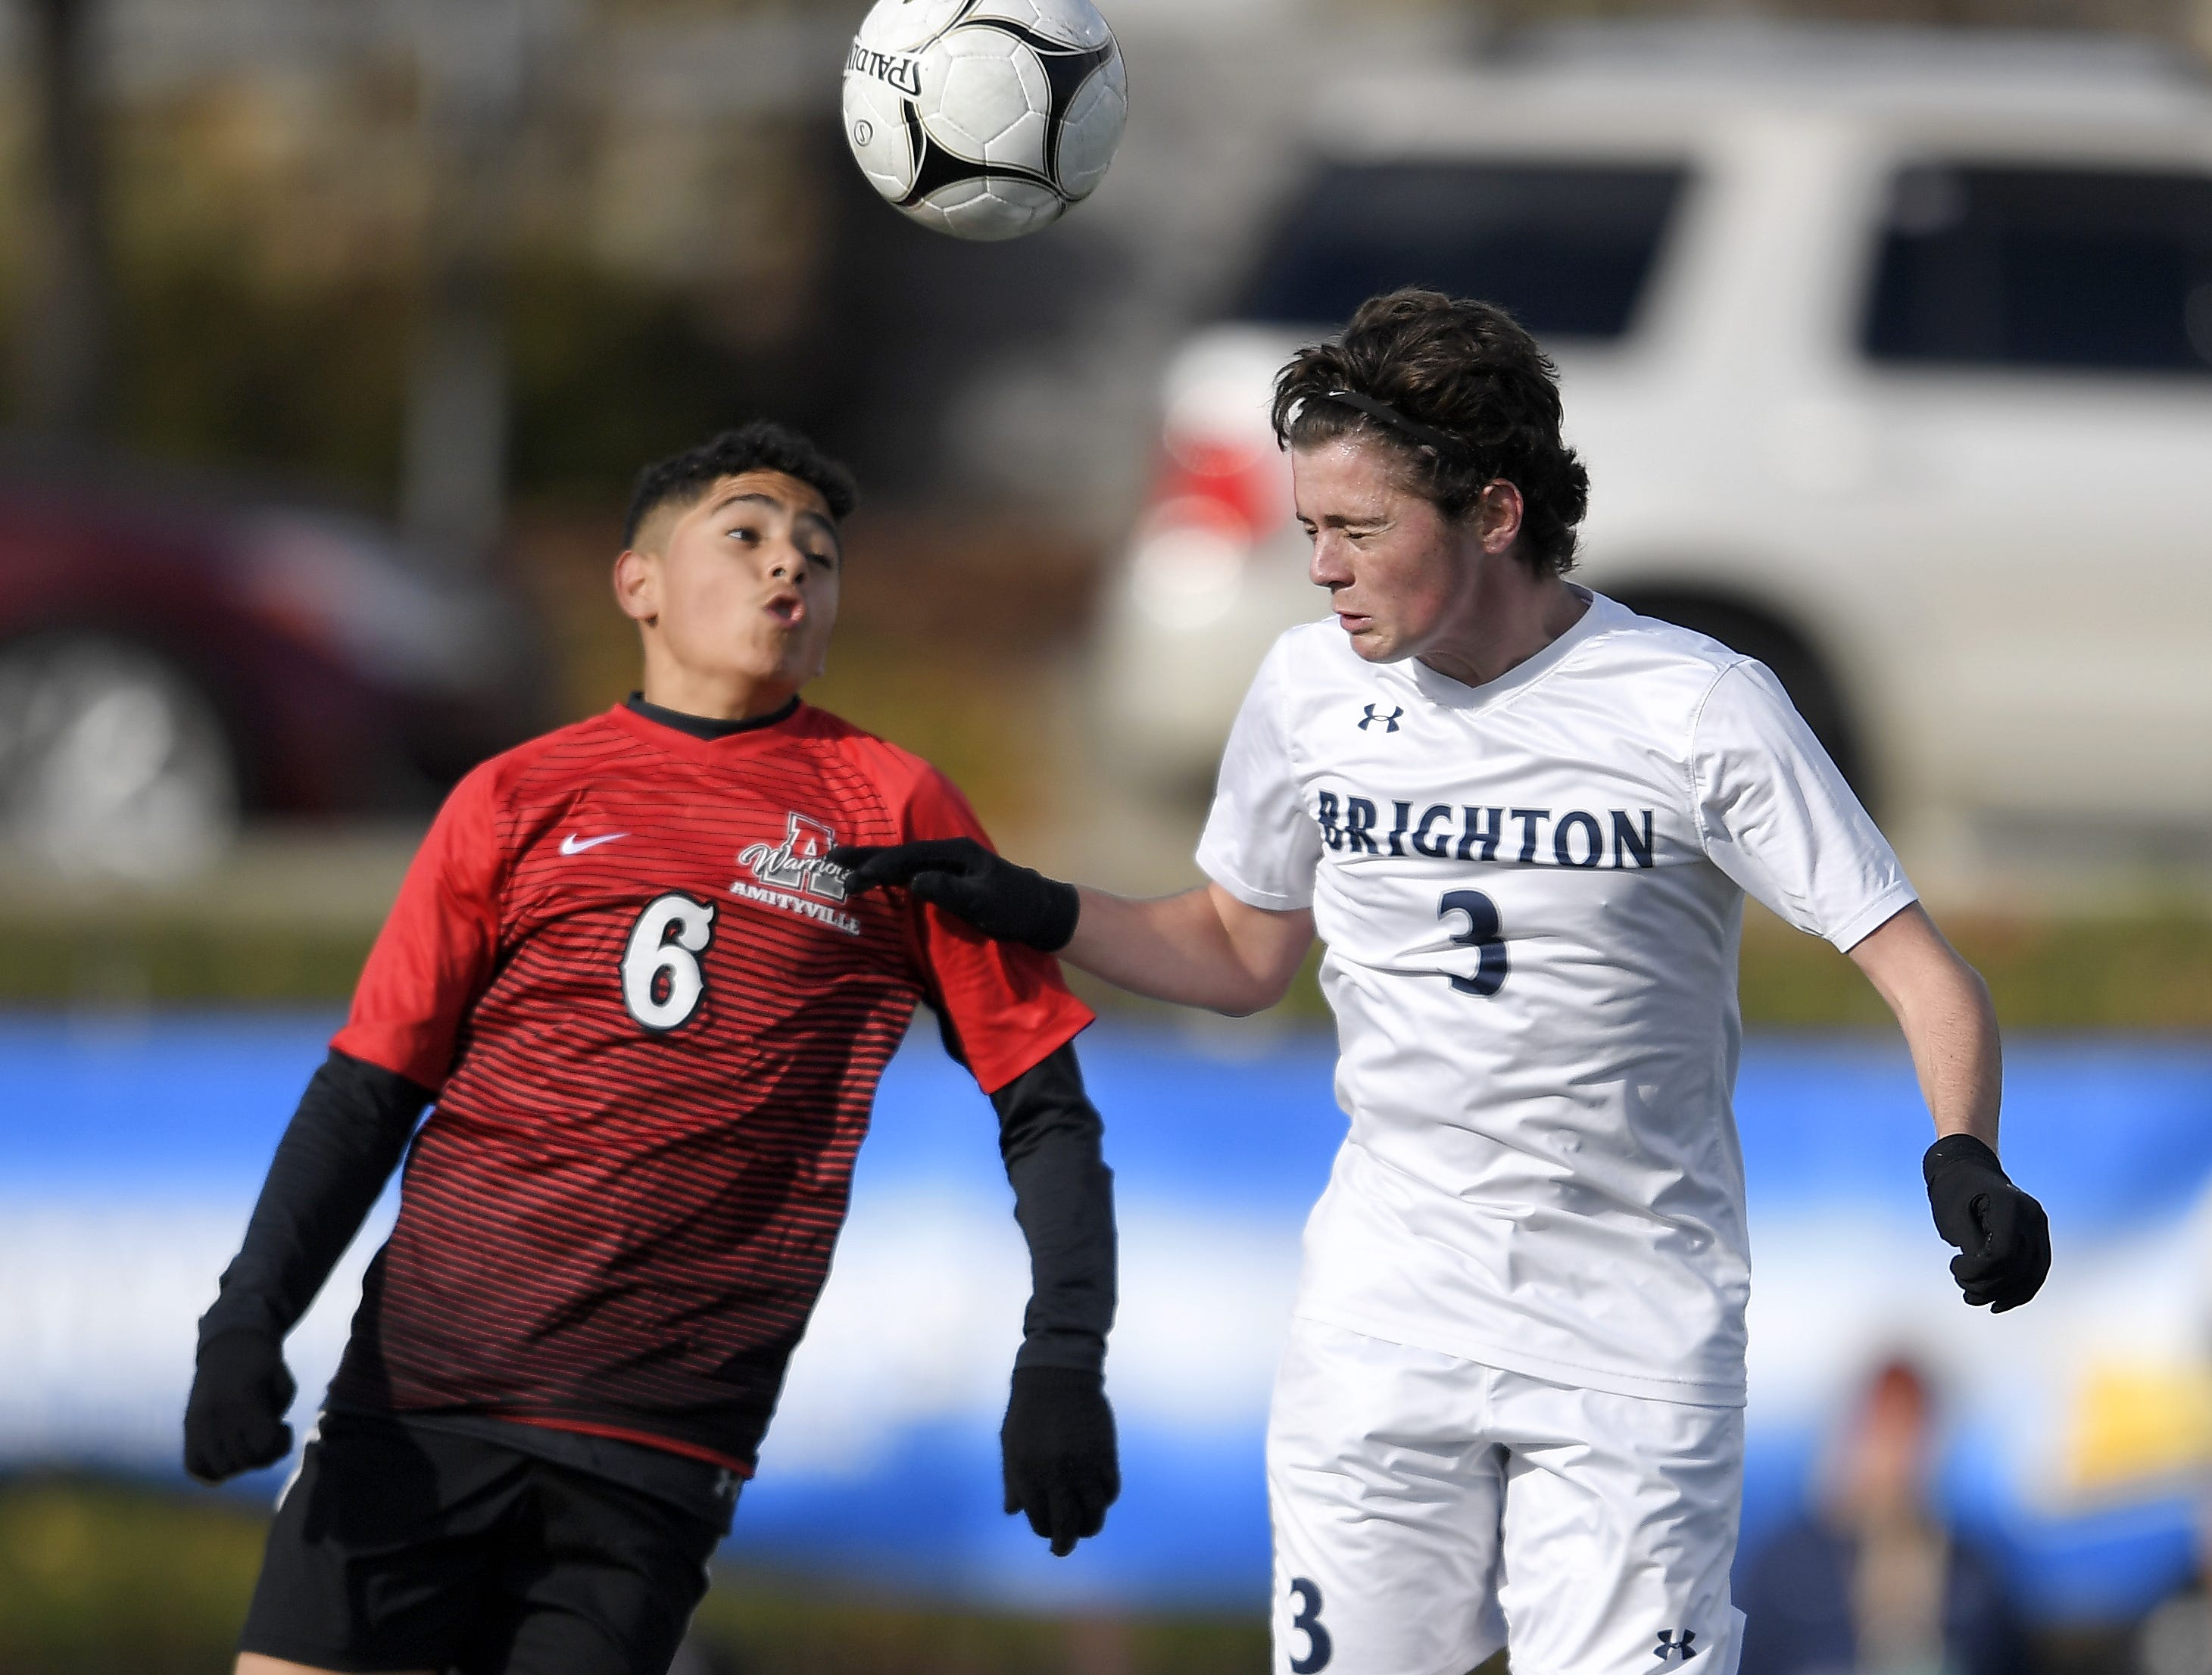 Brighton's Mat Ochs, right, jumps for a header against Amityville's Jeremy Guardado during a Class A semifinal at the NYSPHSAA Boys Soccer Championships in Newburgh, N.Y., Saturday, Nov. 10, 2018.